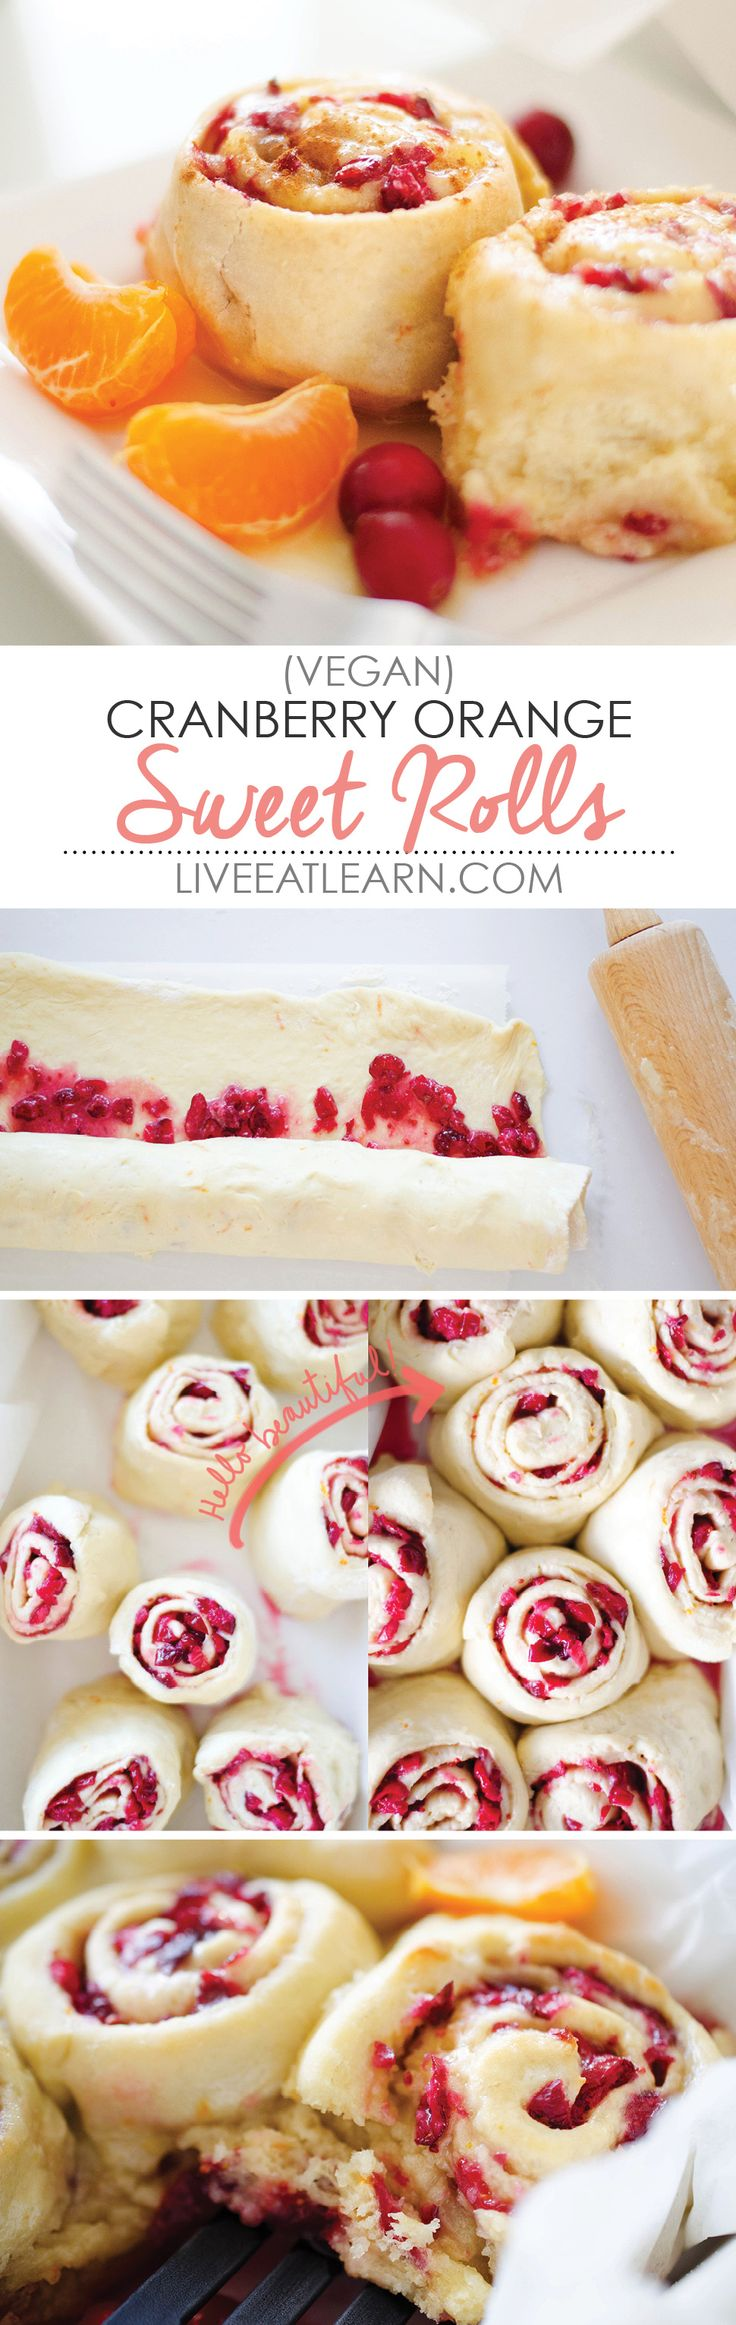 This Cranberry Orange Sweet Roll recipe is so easy and healthy! This fruity take on cinnamon rolls is perfect for breakfast and brunch. No one will believe you when you tell them it's vegan! // Live Eat Learn